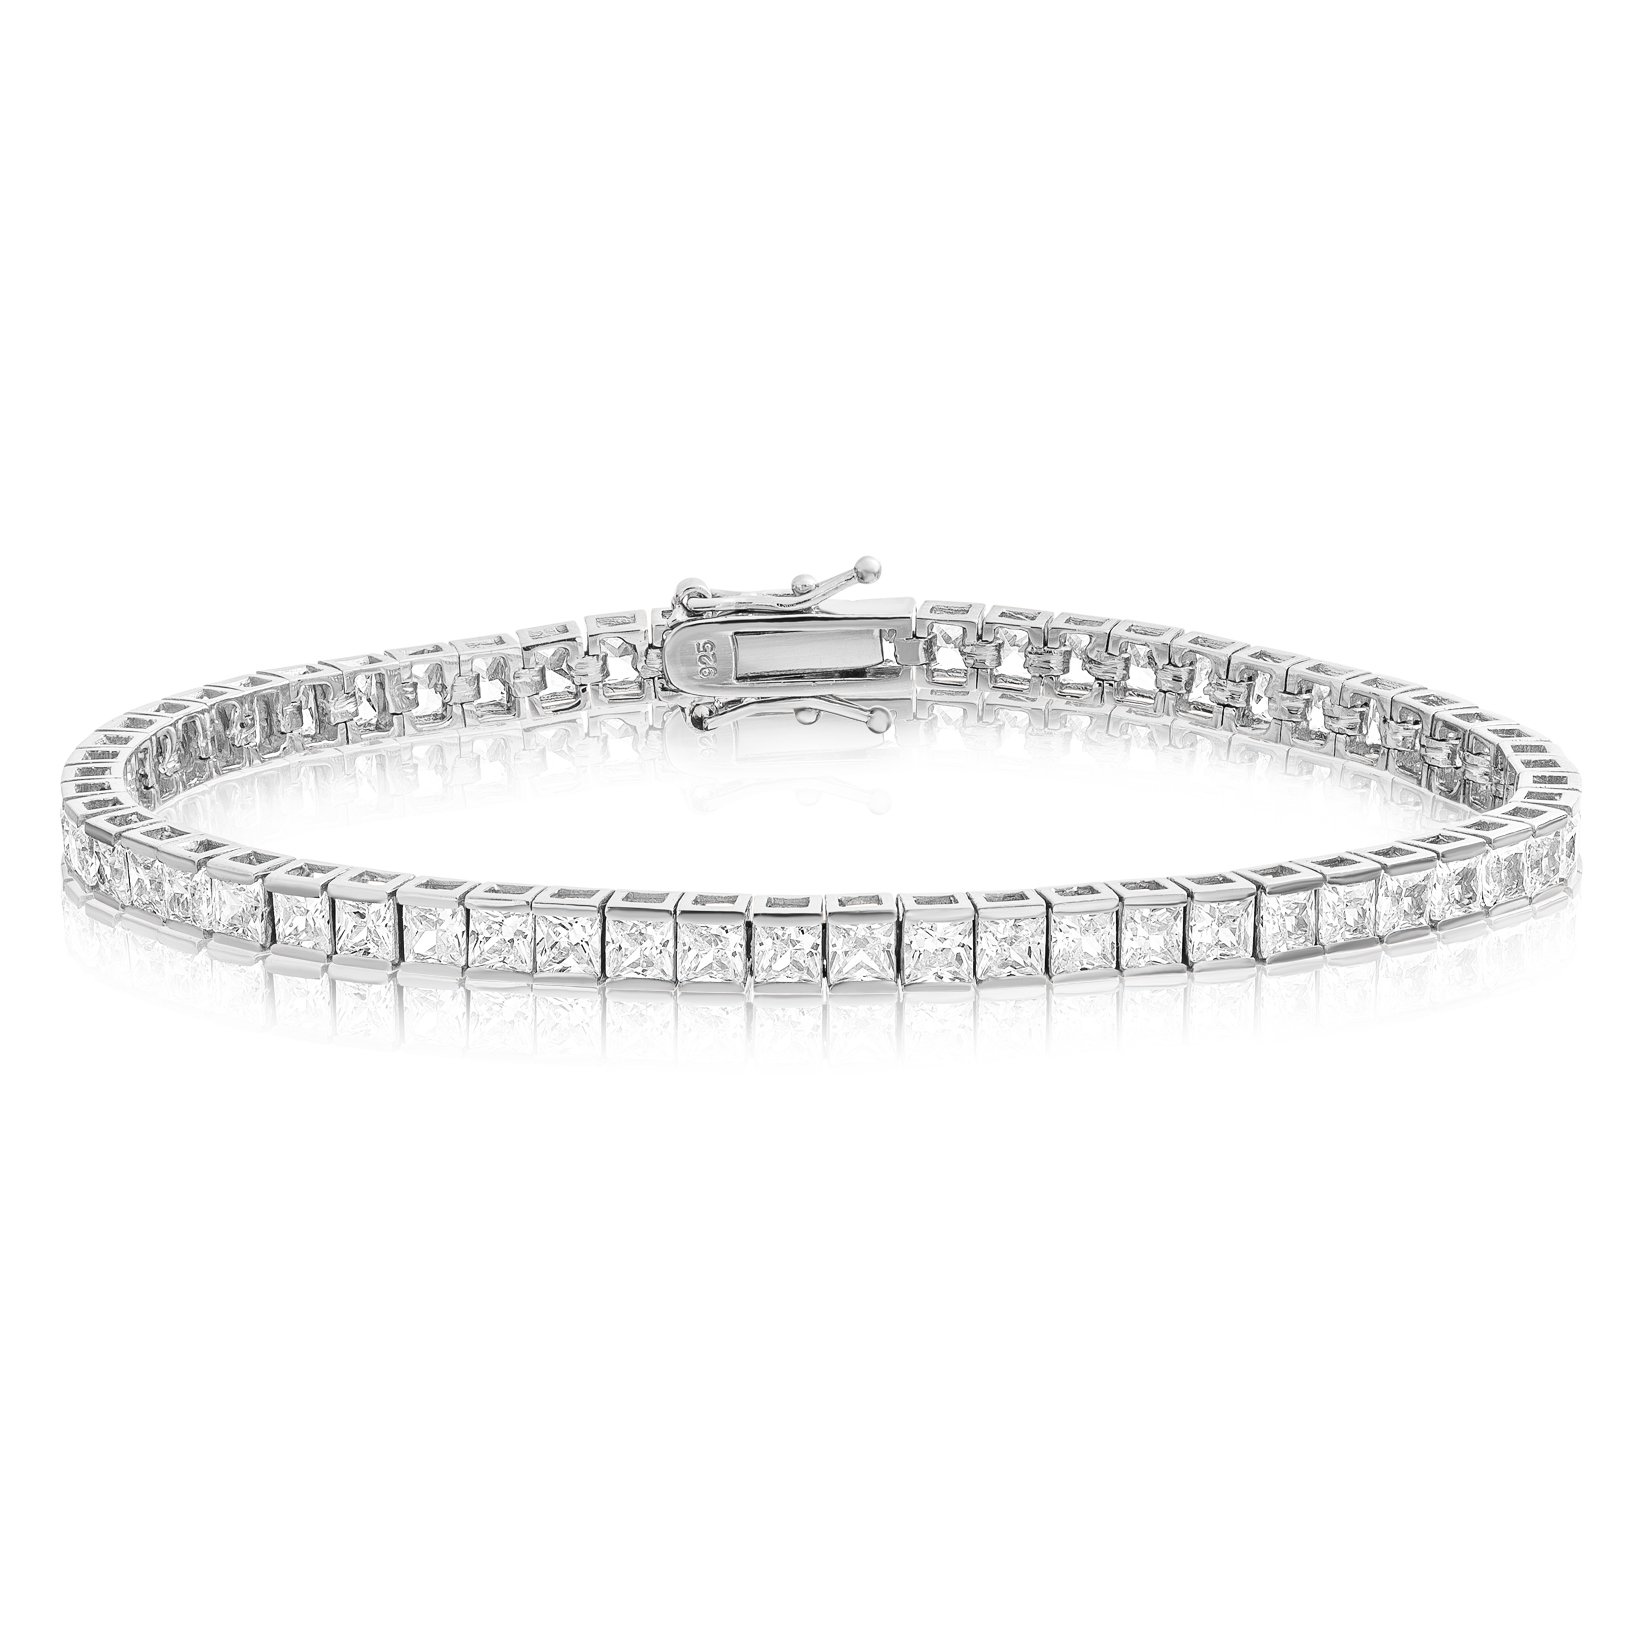 KEZEF Creations Rhodium Plated Sterling Silver Square Princess Cut 3x3 White Cubic Zirconia Tennis Bracelet 7.25'' inch